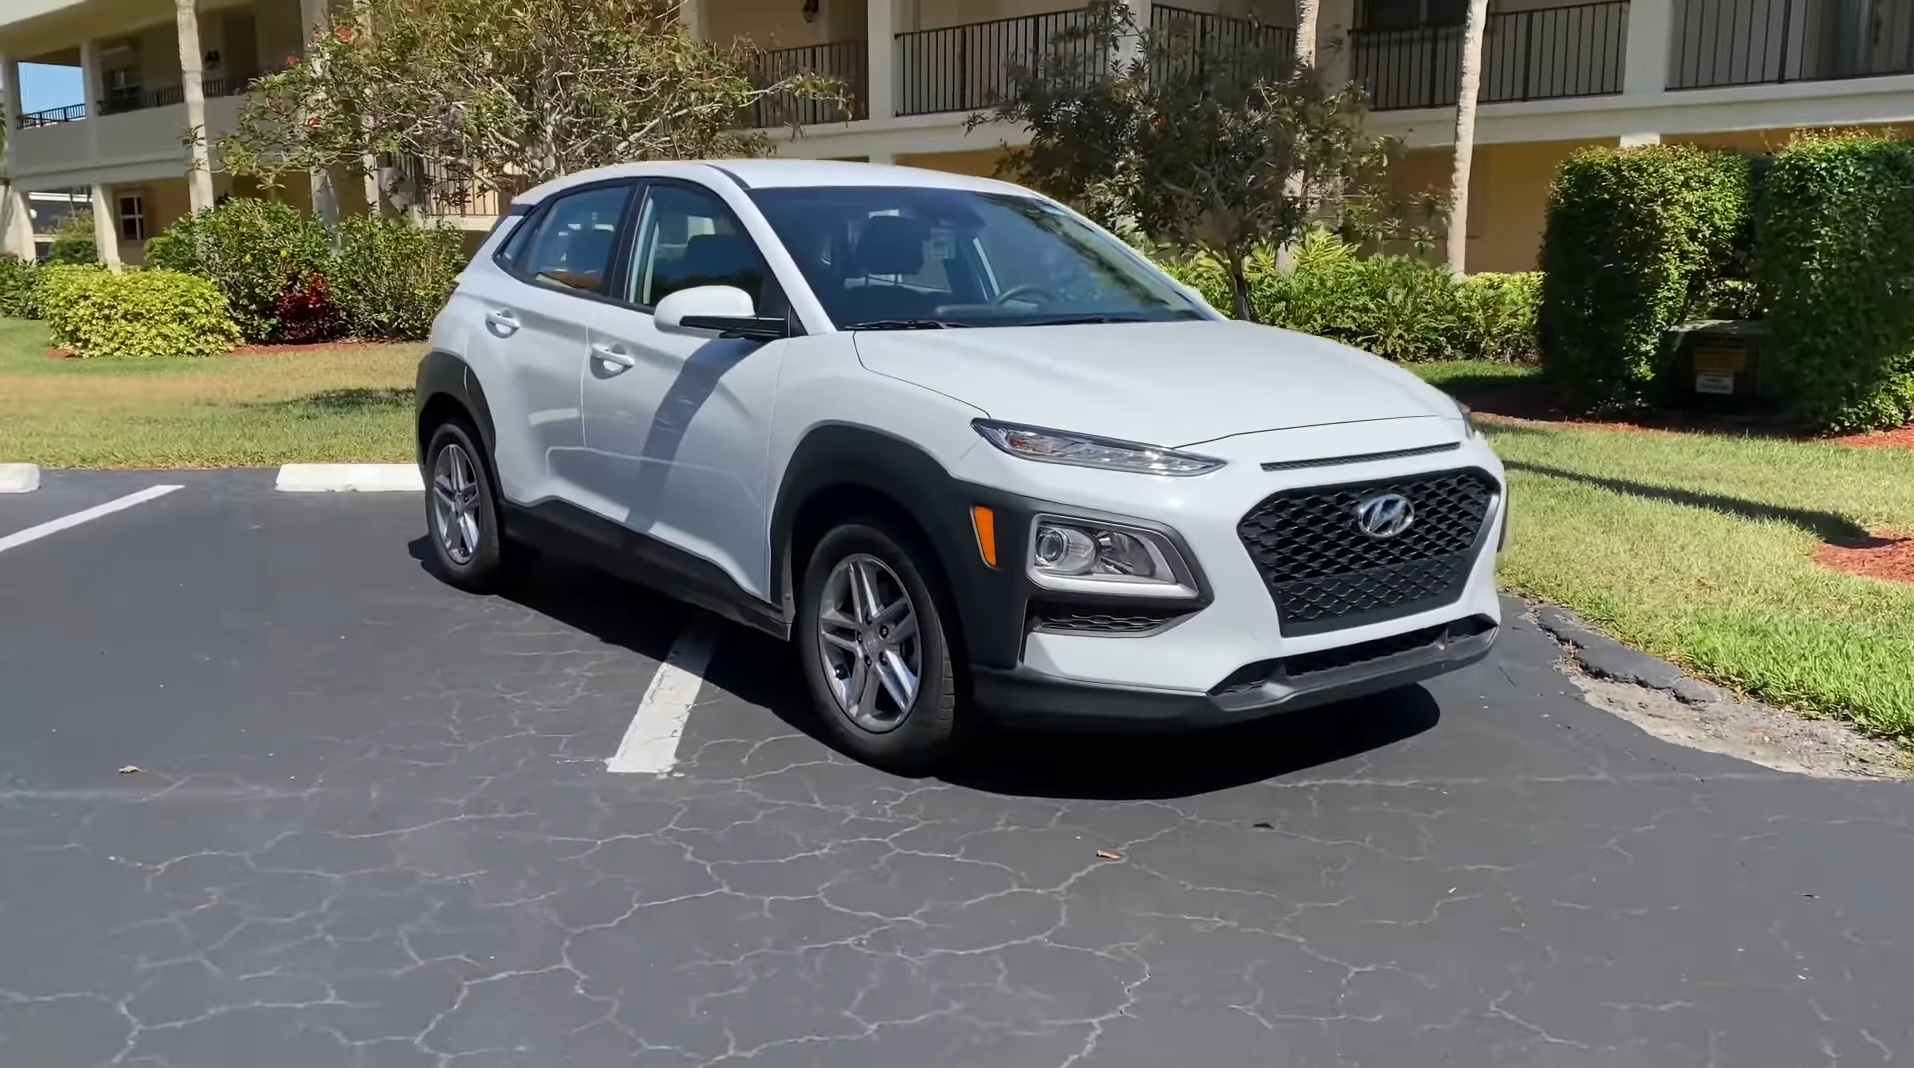 It is quite a practical subcompact suv that is aimed at fulfilling everyday family needs. Tfl Reviews The Most Affordable 2021 Hyundai Kona It S Pretty Good Value Autoevolution